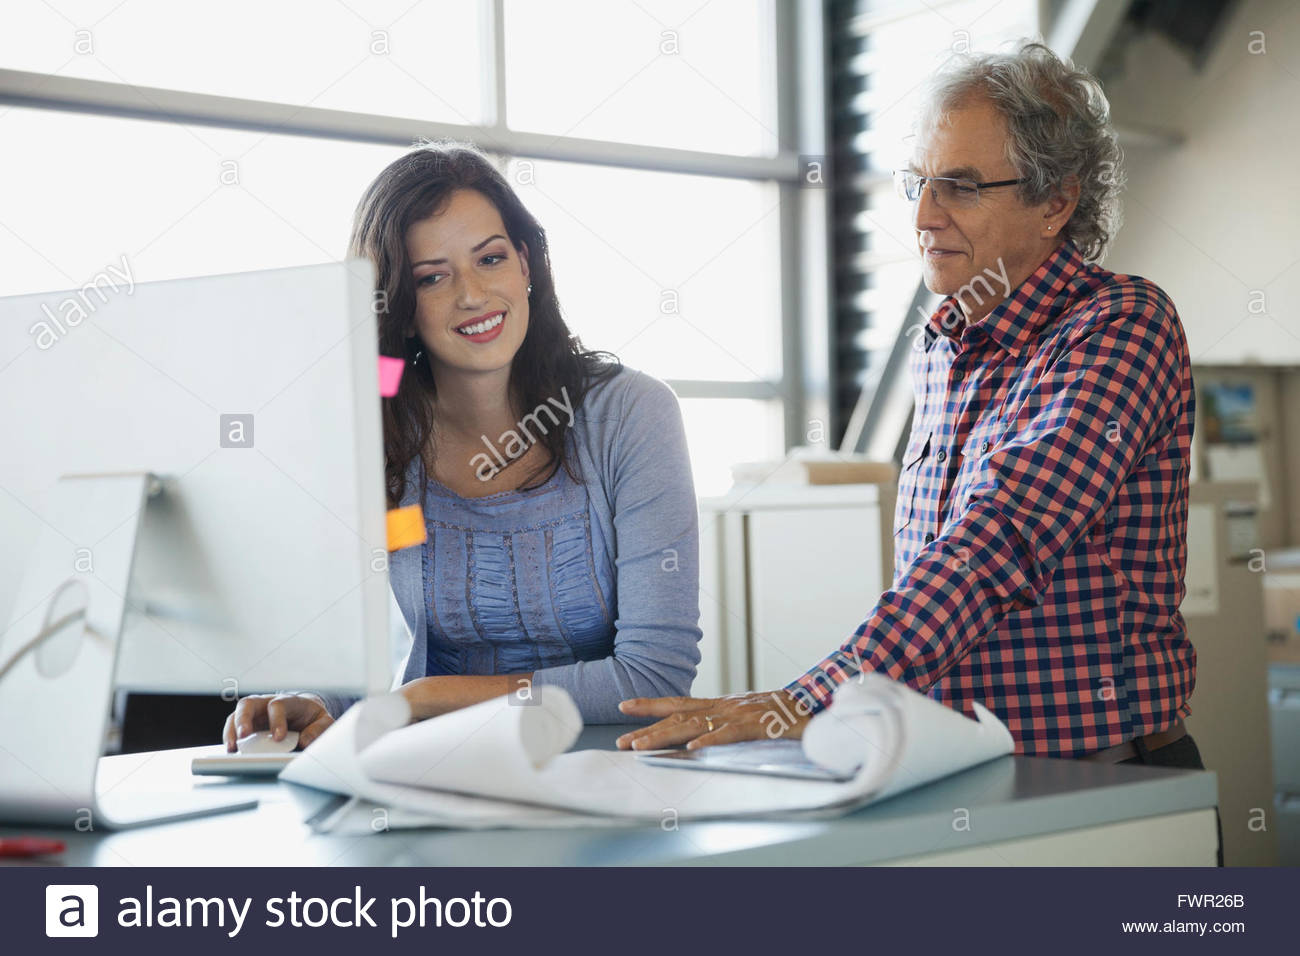 Business people working on computer in office - Stock Image